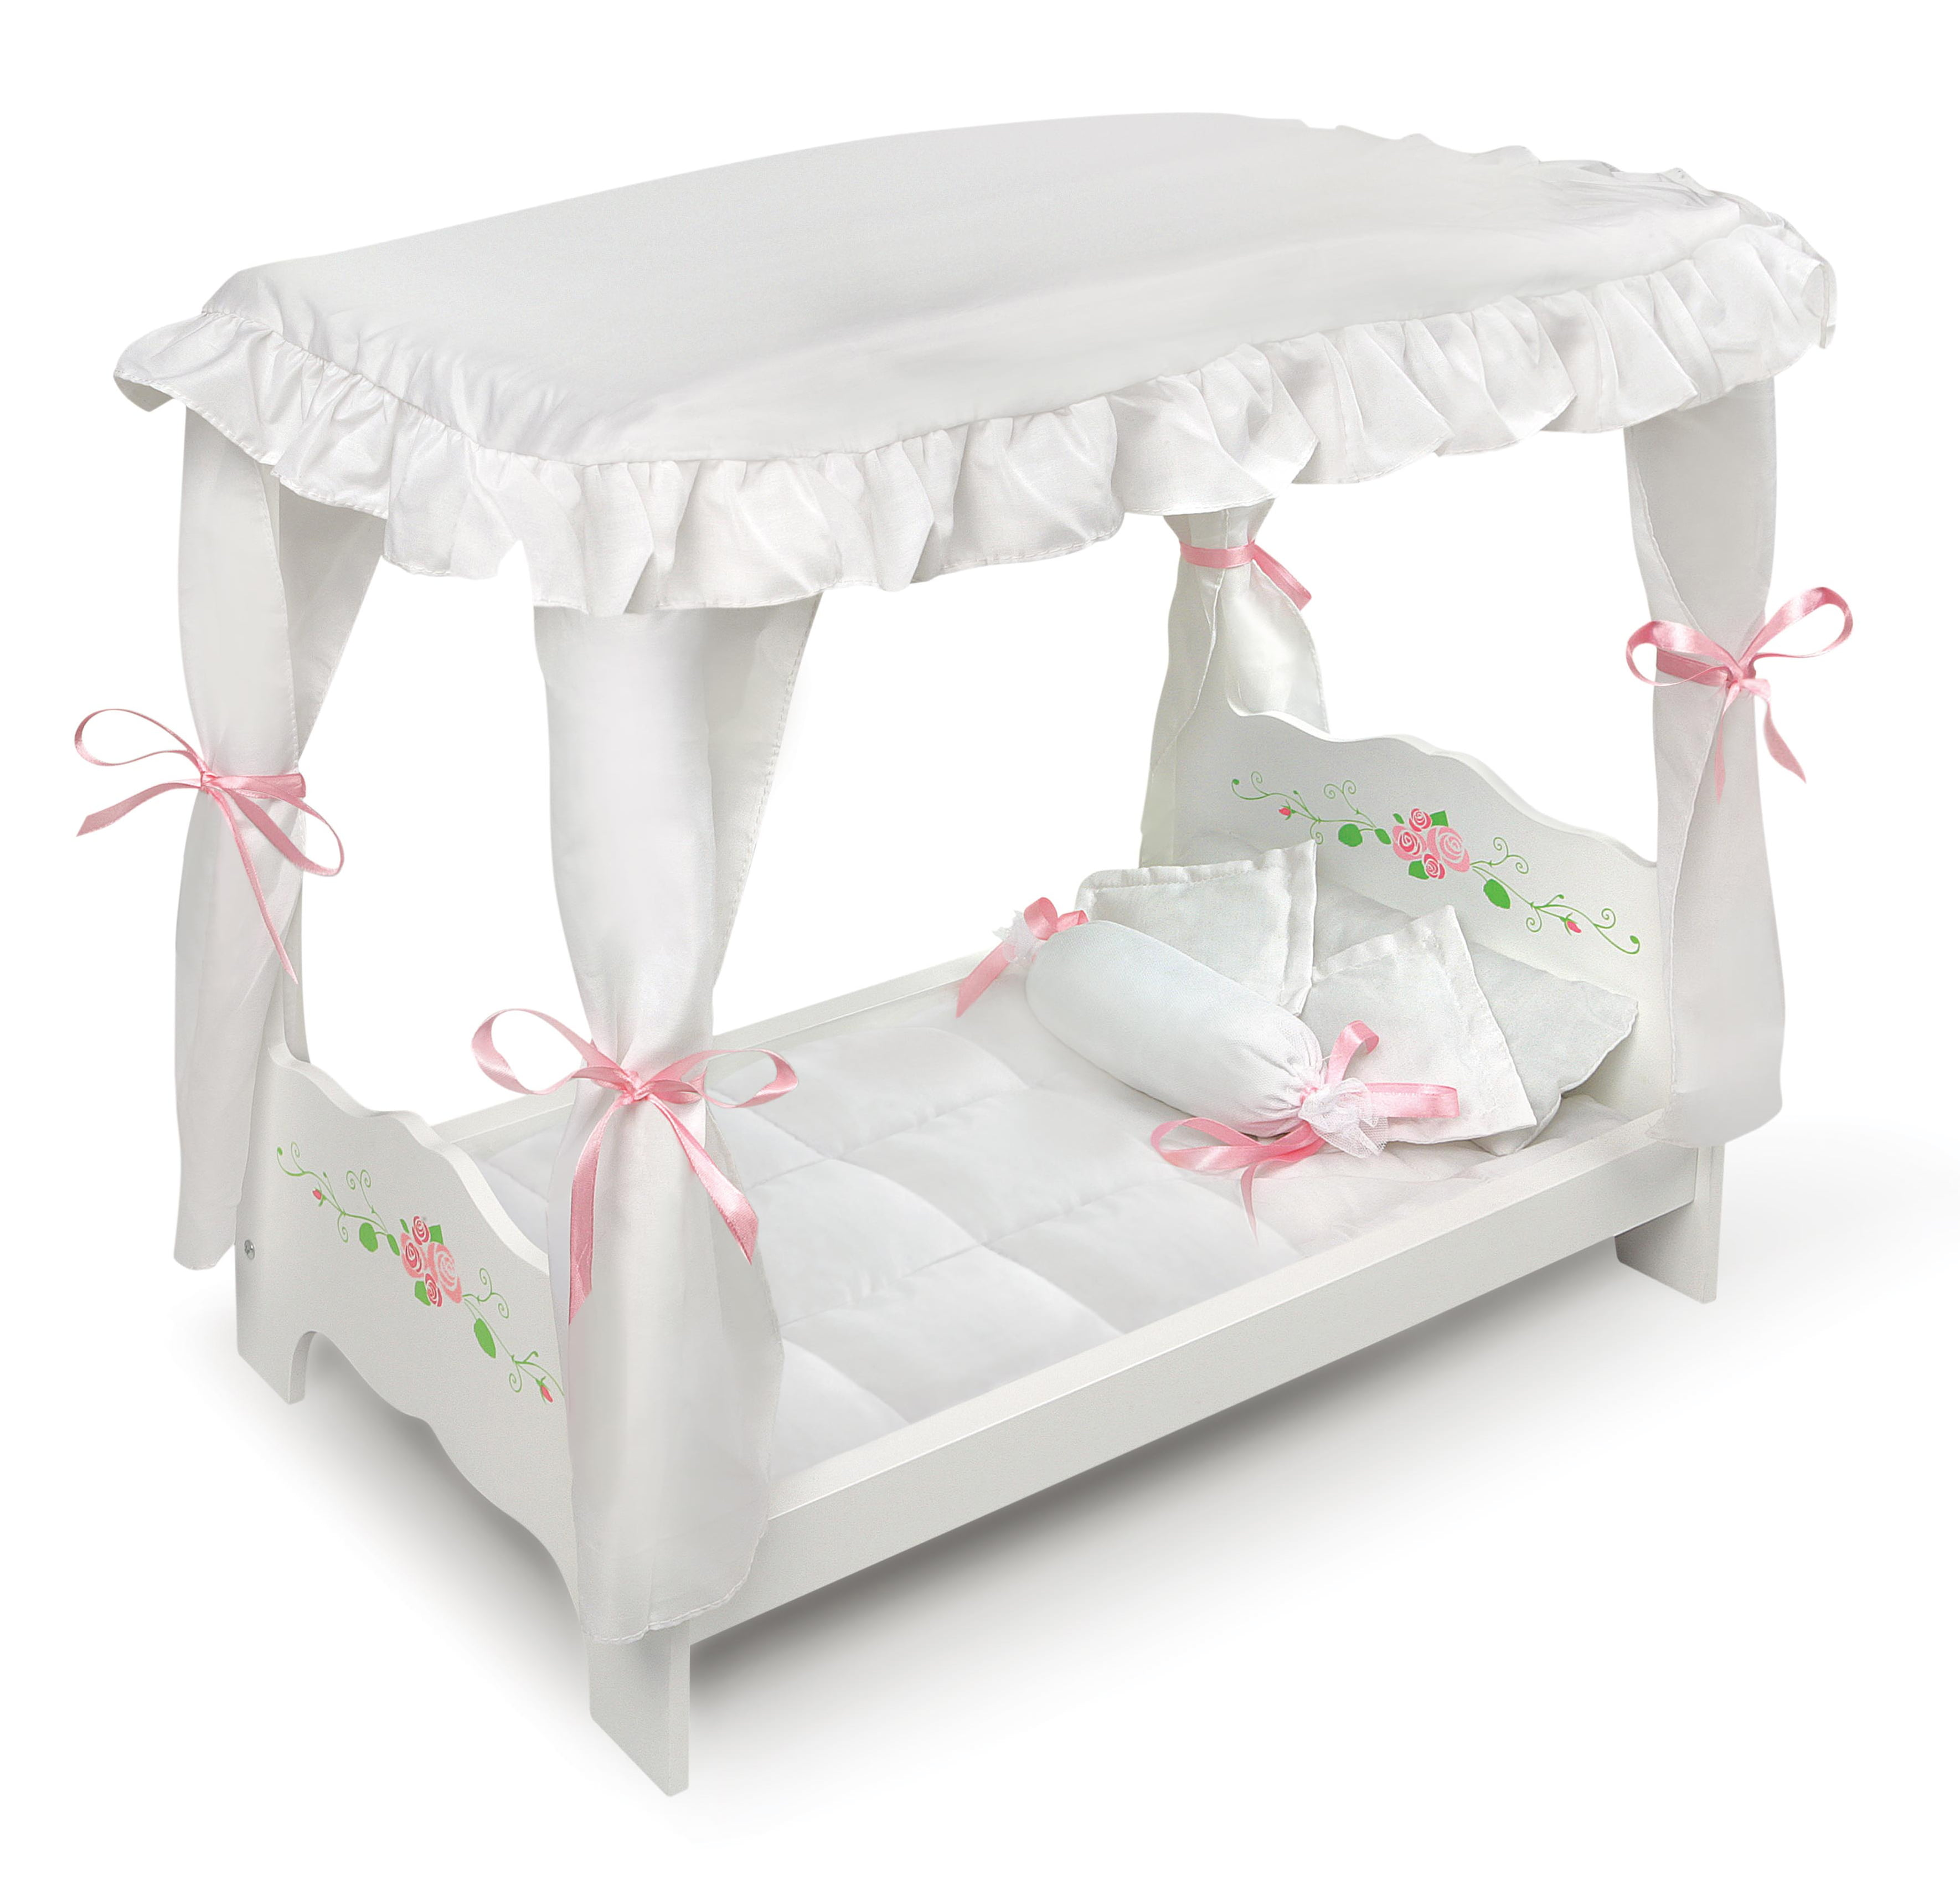 "Badger Basket Canopy Doll Bed with Bedding White Rose Fits American Girl, My Life As & Most 18"" Dolls by Badger Basket"